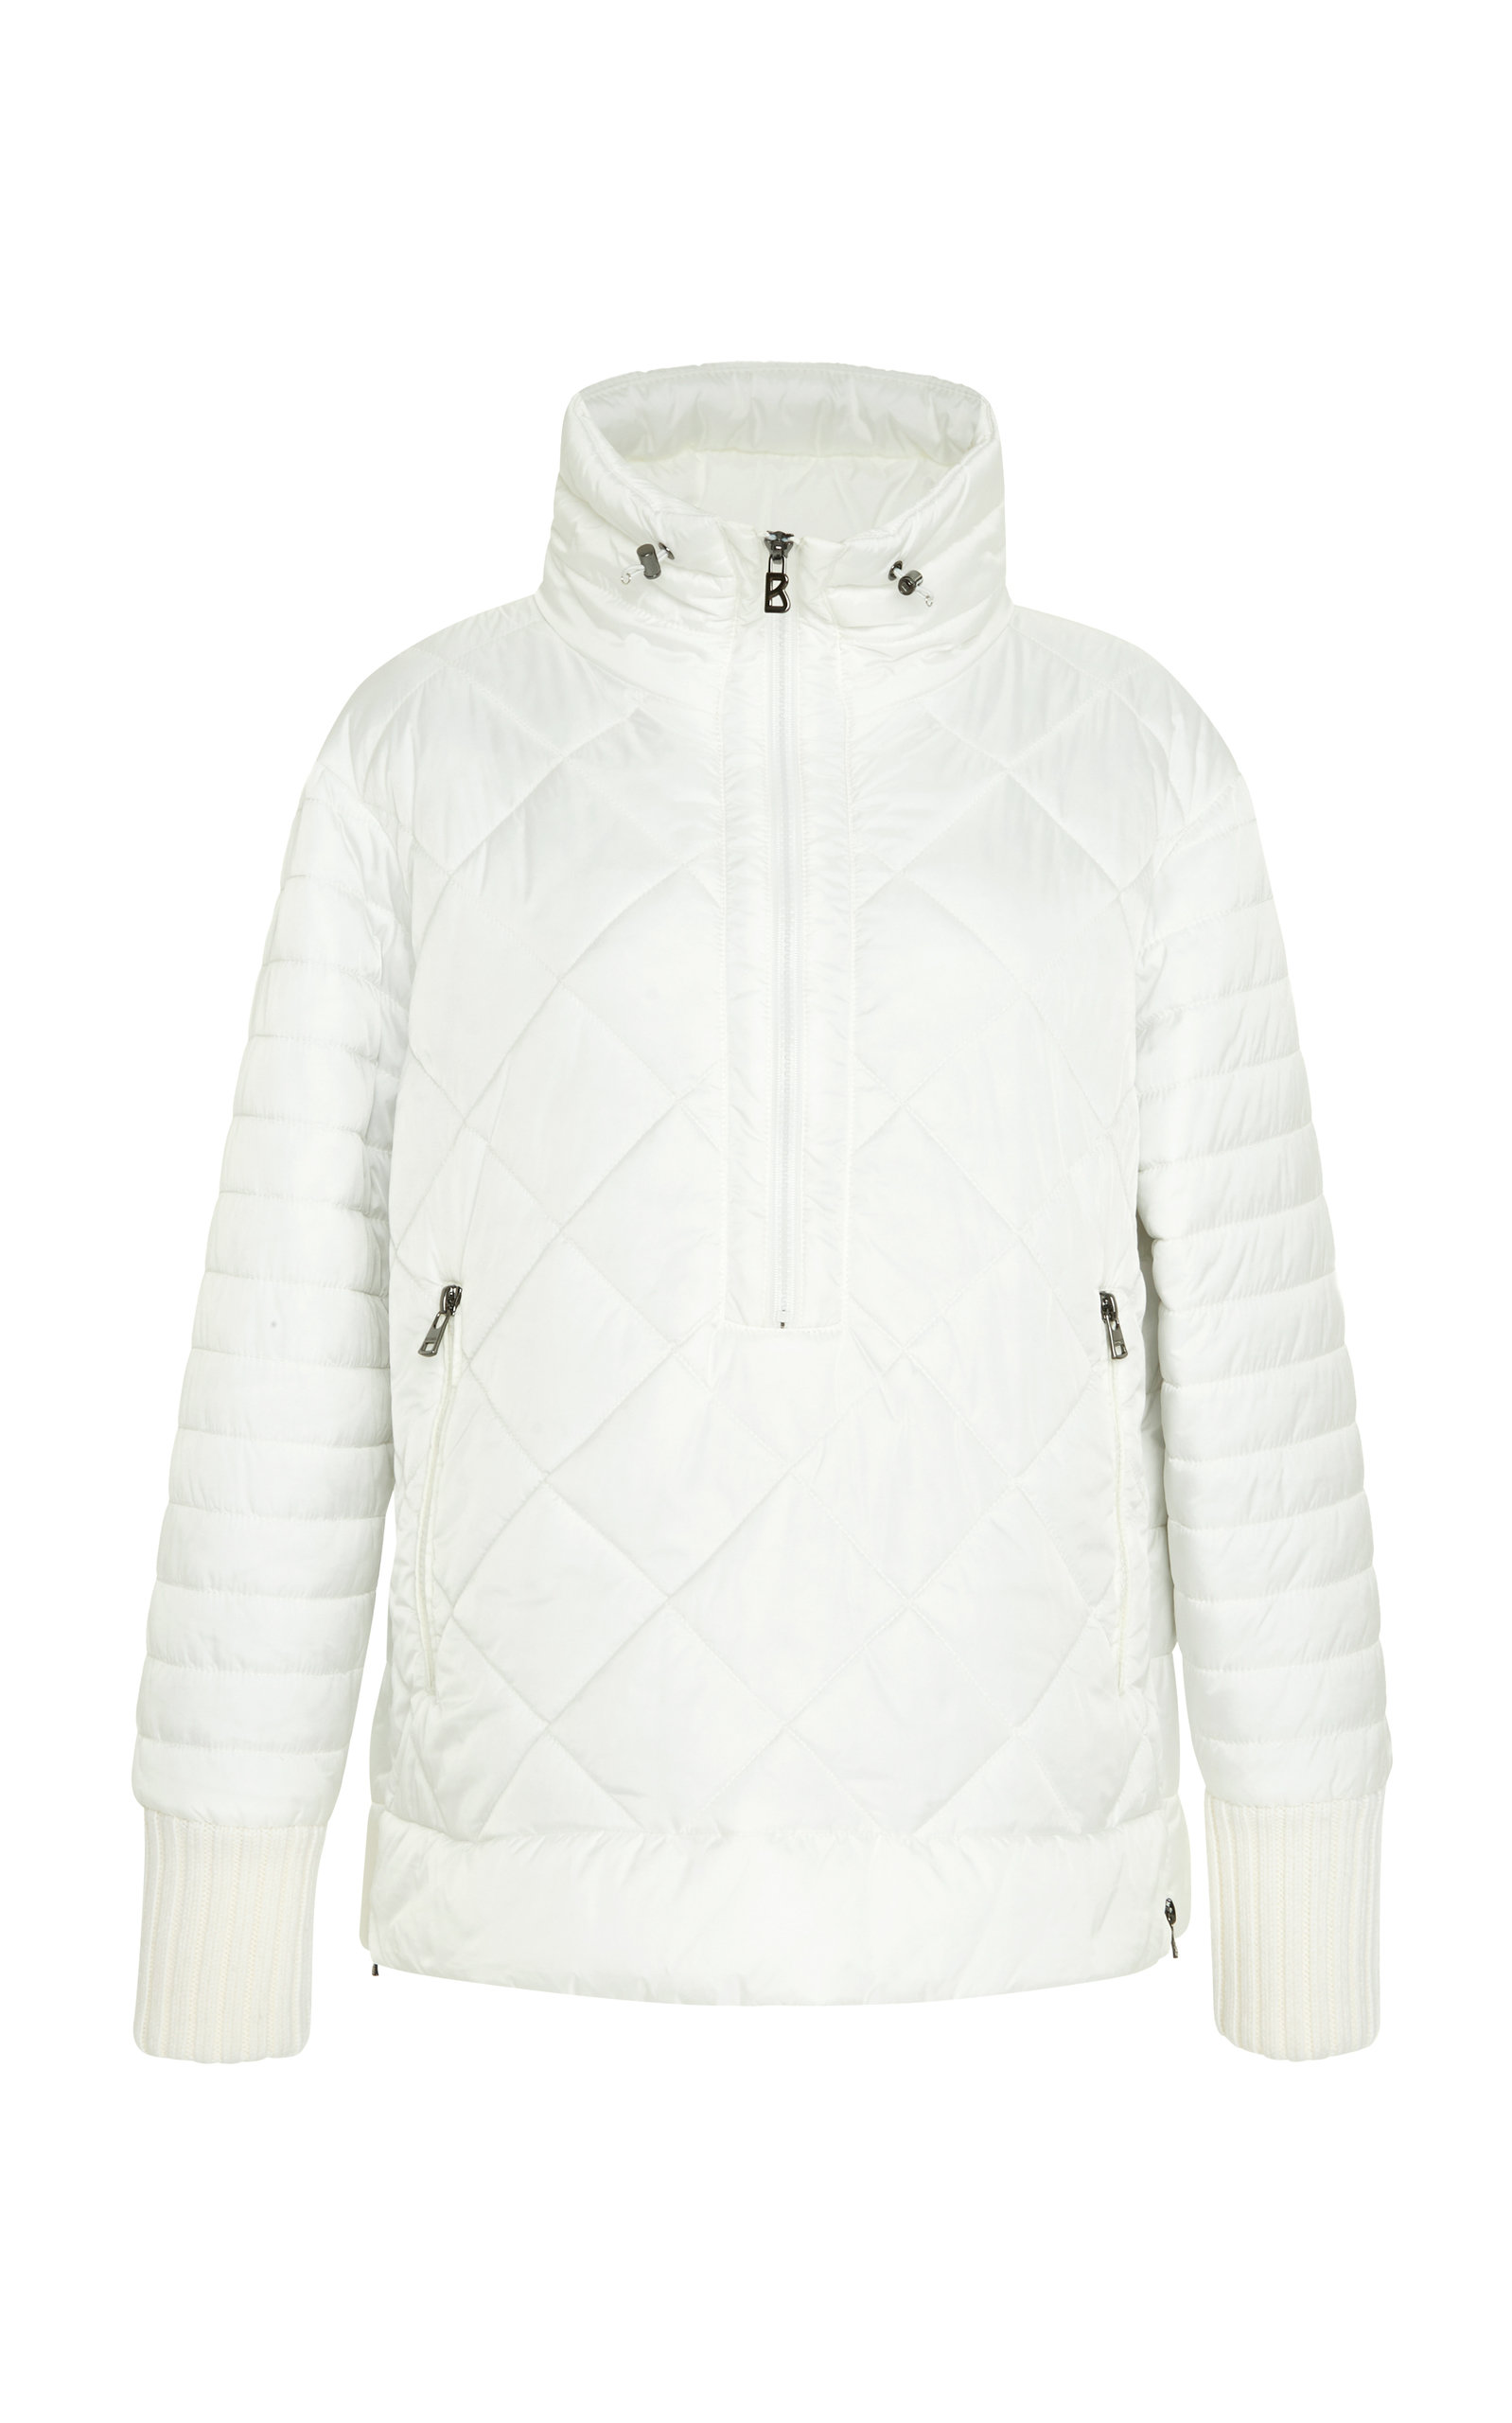 BOGNER X WHITE CUBE CASCA QUILTED DOWN SHELL JACKET